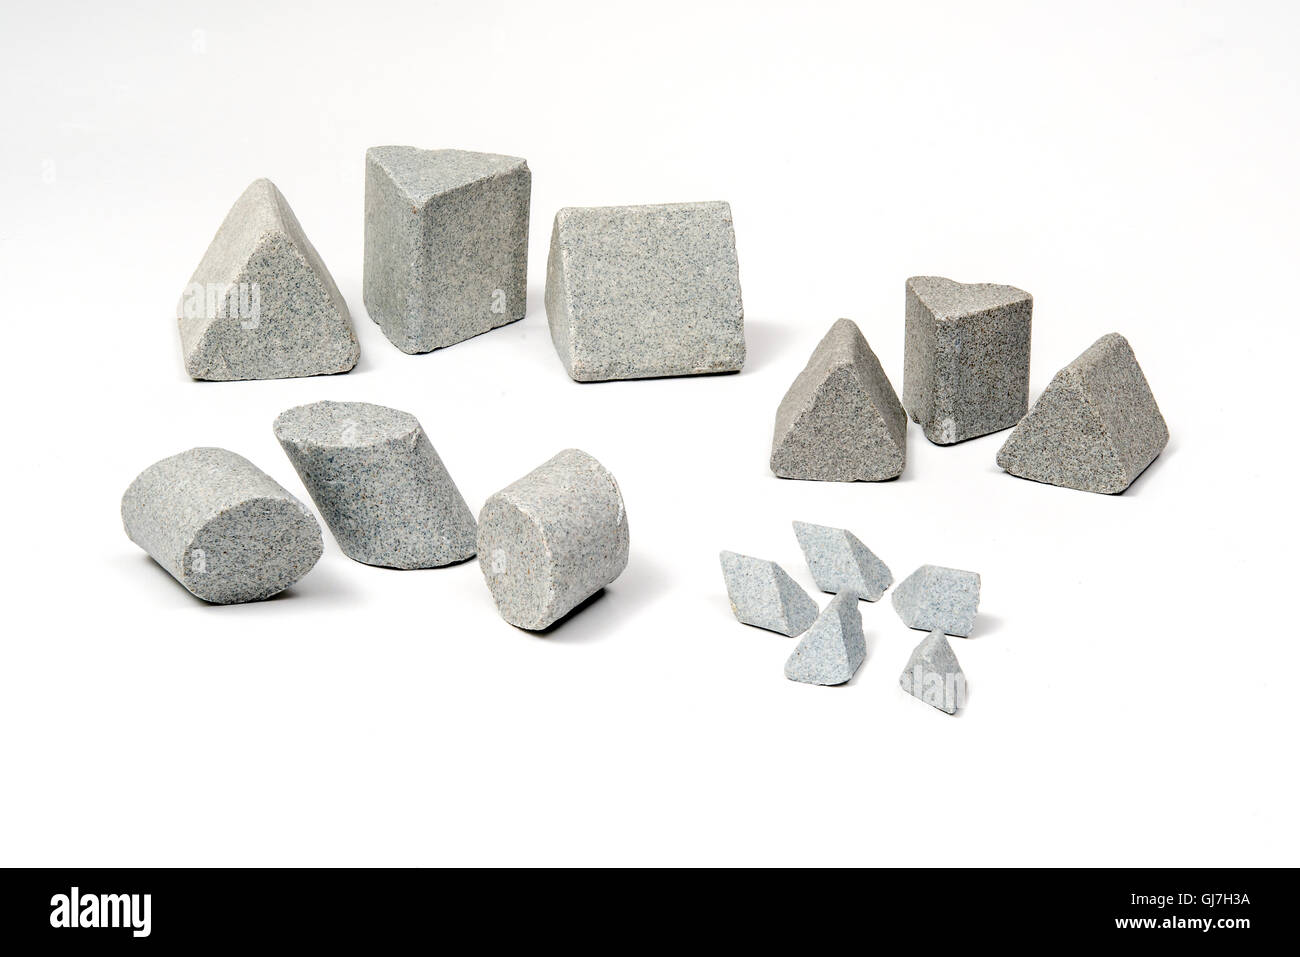 Industrial  sharpening stones sets in different shapes on white background - Stock Image